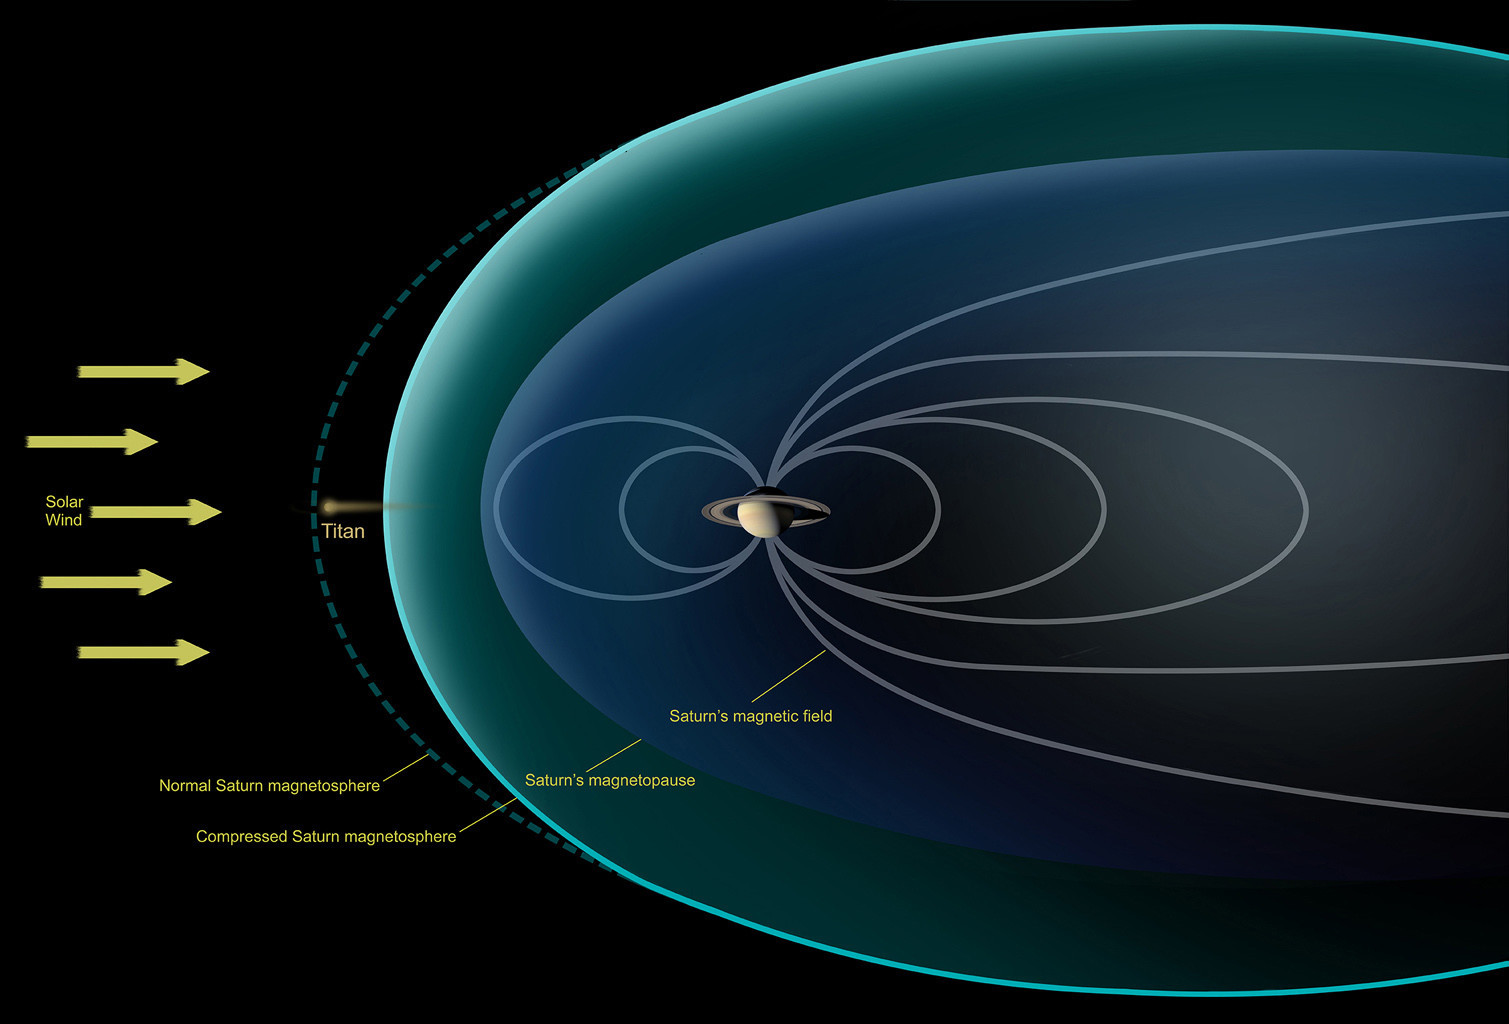 How Cassini came to view Titan when it was outside Saturn's magnetosphere.